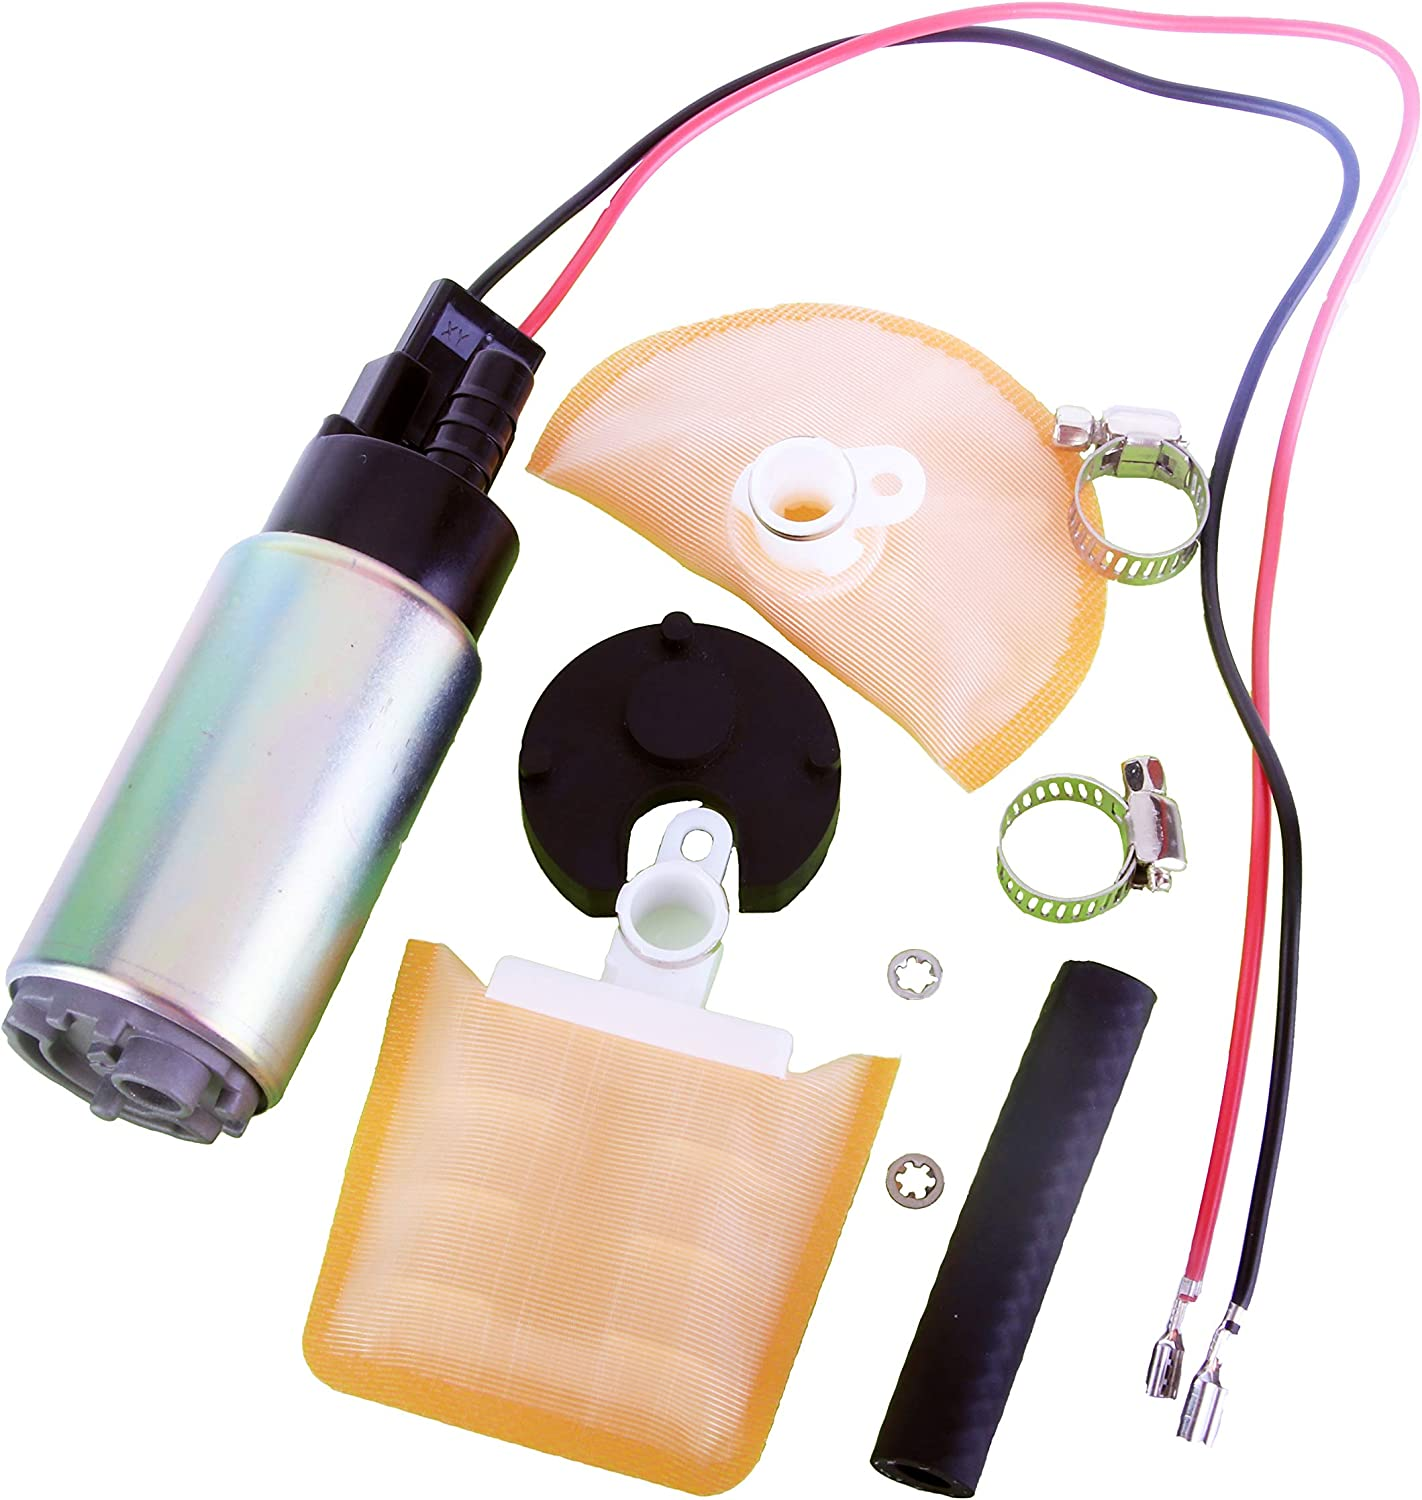 MUCO New 1pc E8213 Electric EFI Fuel Pump Gas Intank With Necessary Installation Kit Fit for Toyota Honda Chevy CMC